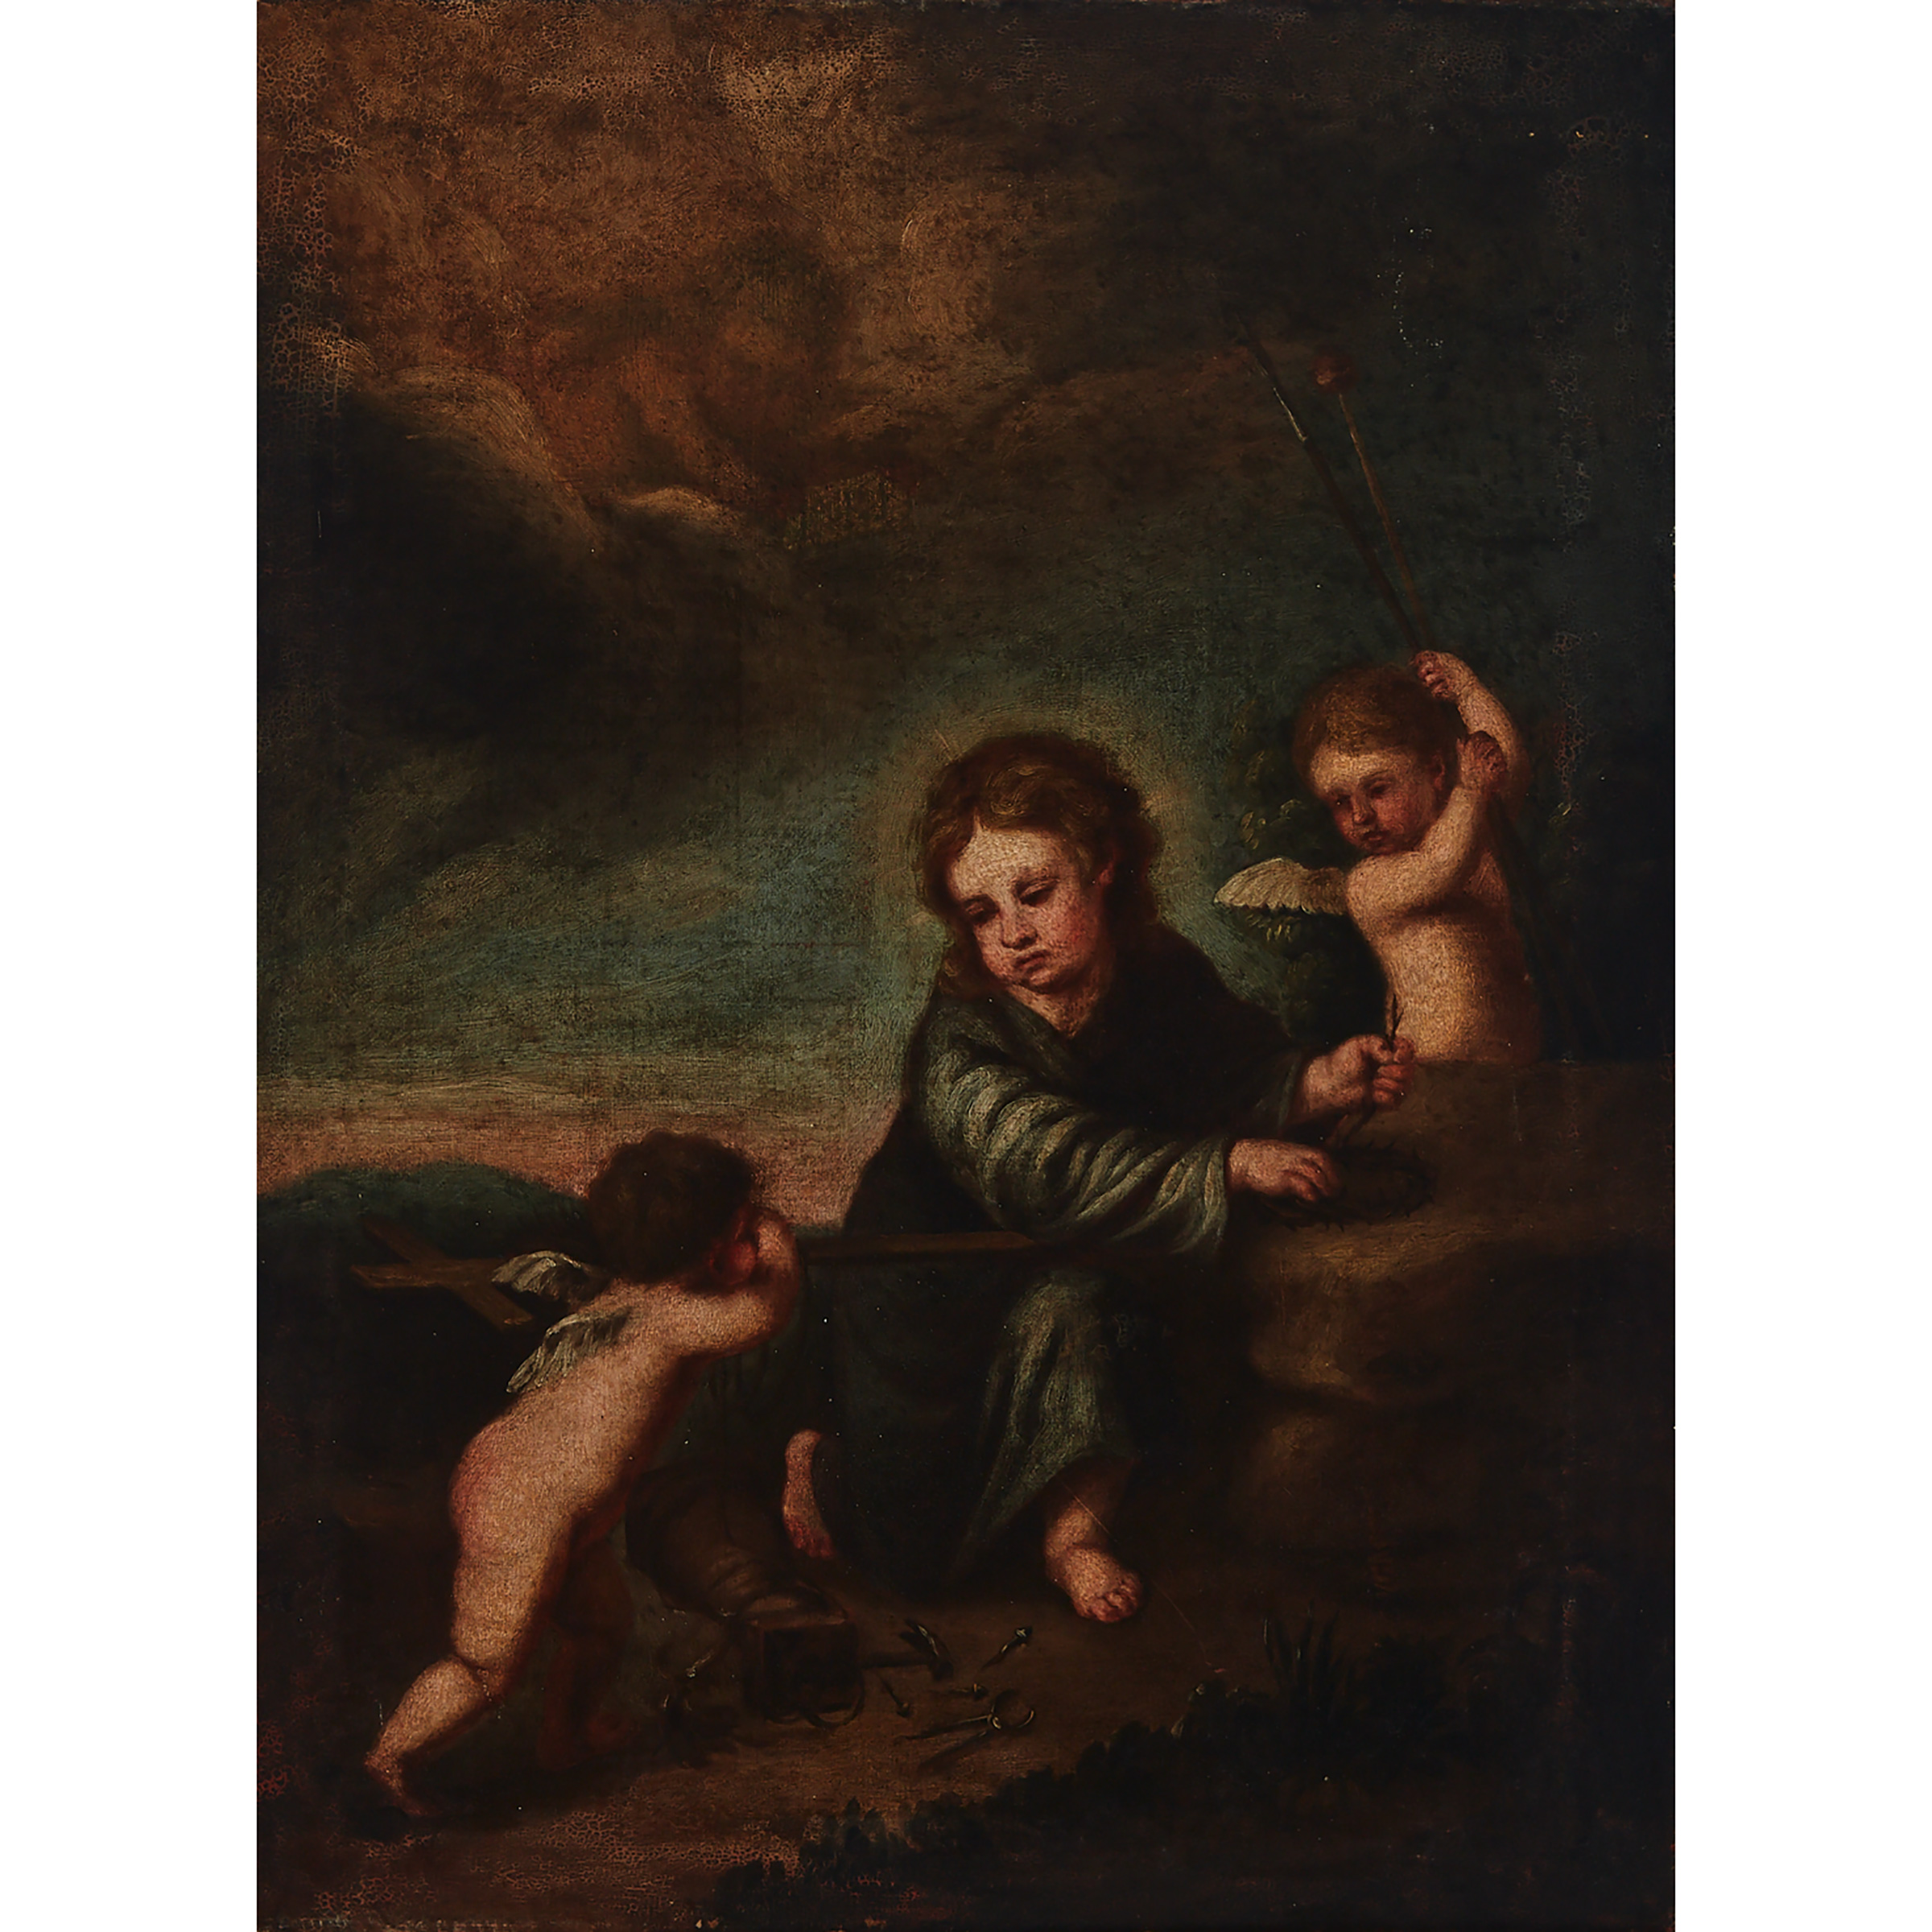 Follower of Bartolomé Esteban Murillo (1617-1682)